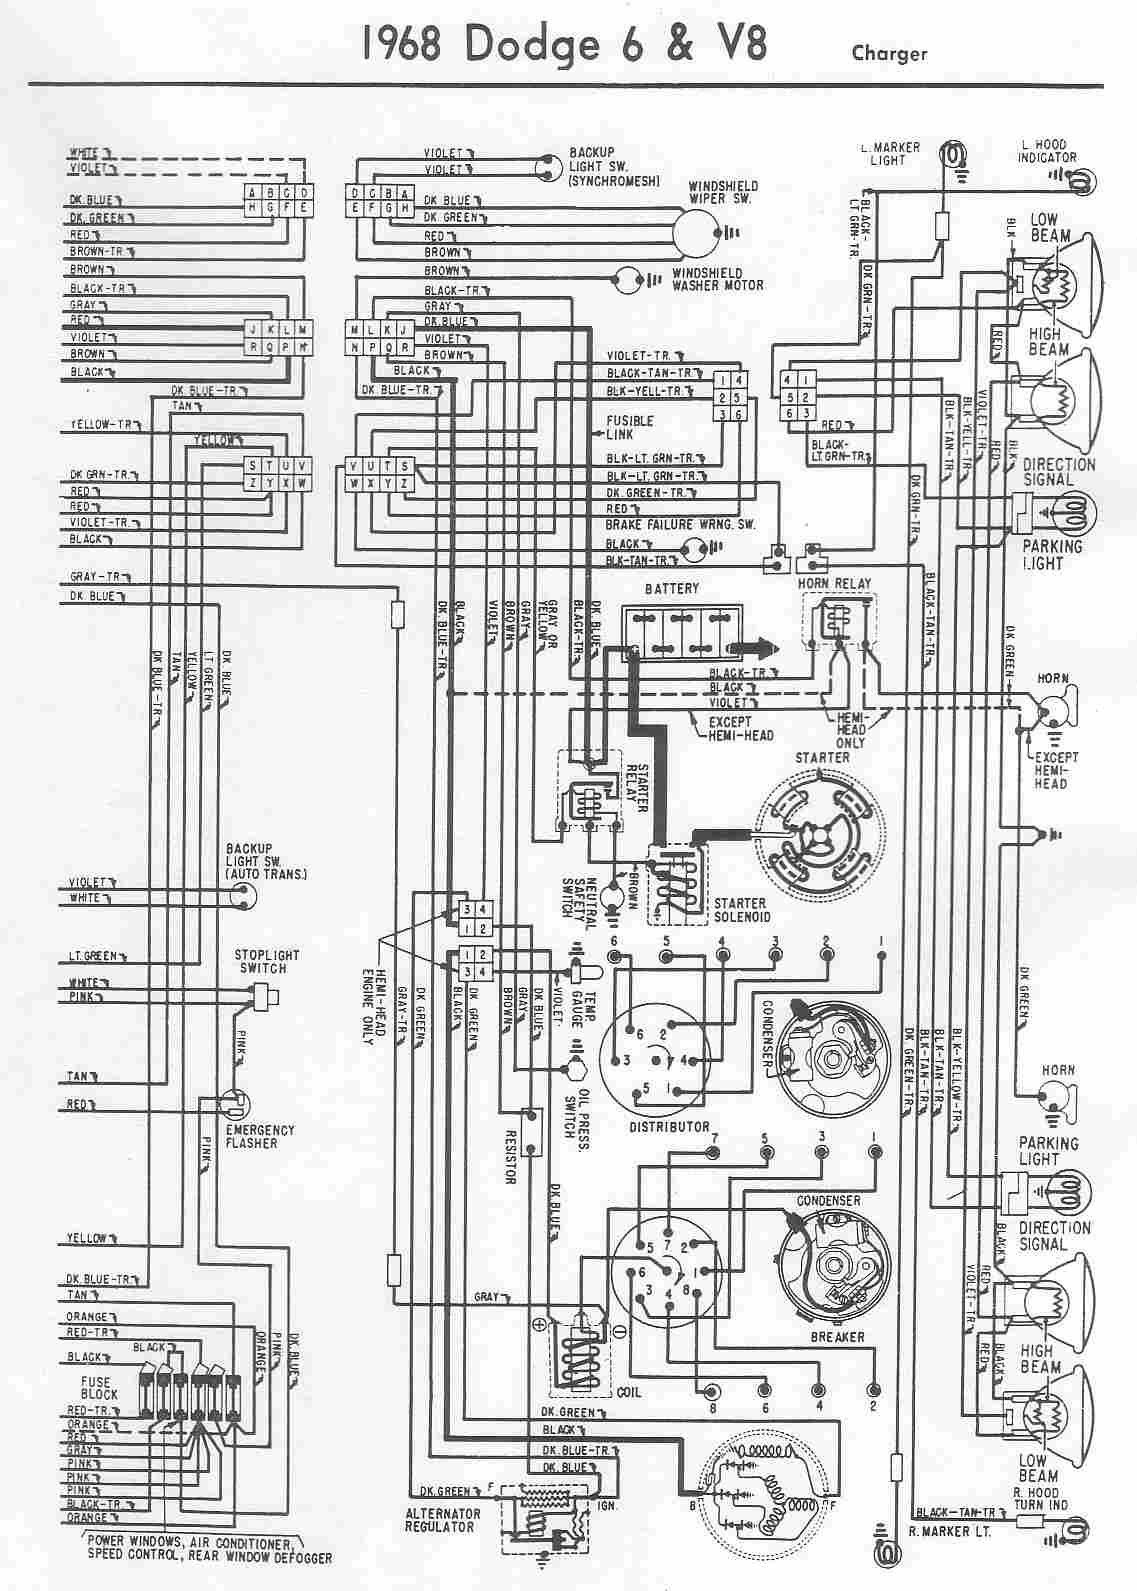 1968 Gtx Wiring Diagram Ford F 150 Fuse Box Diagram Cig Lighter 1994 Chevys Kankubuktikan Jeanjaures37 Fr